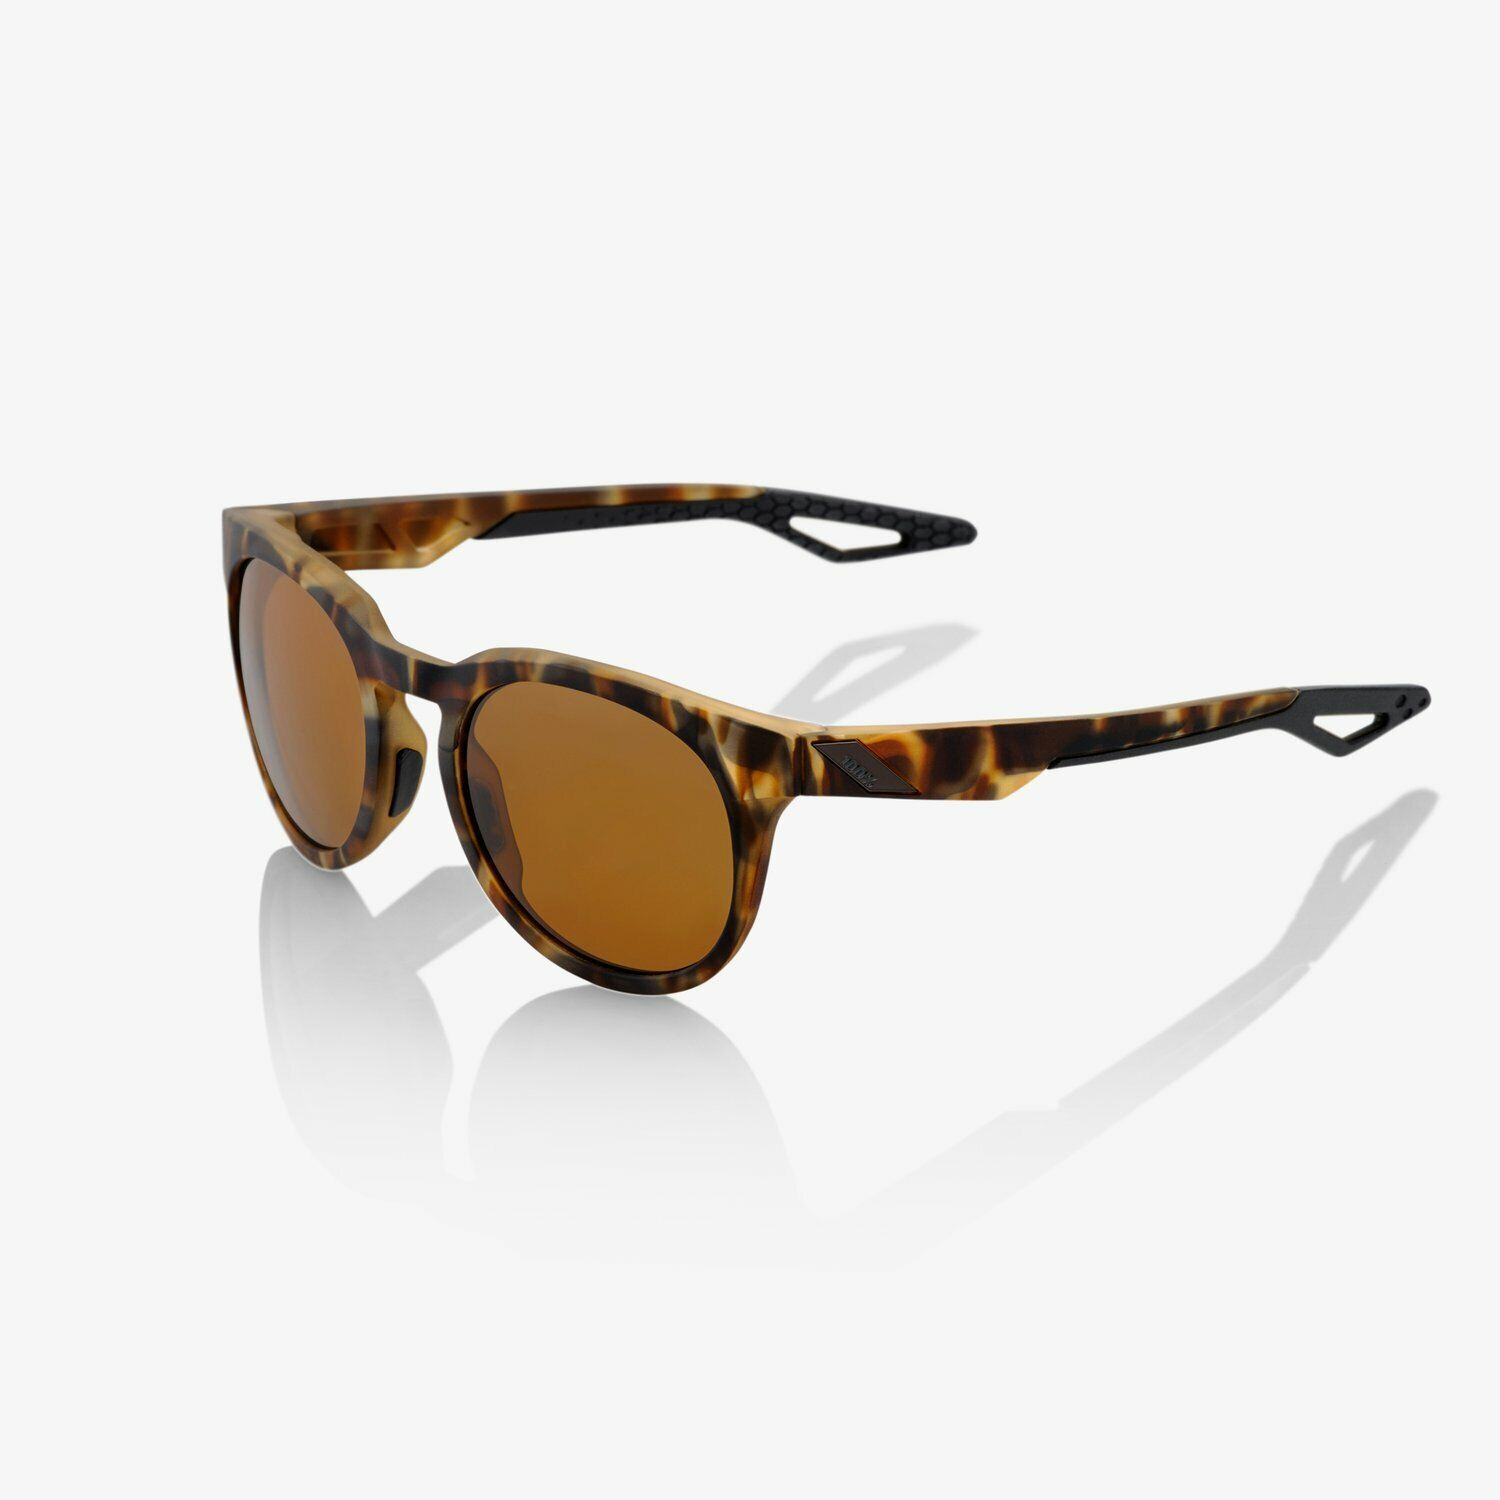 New 100% Campo Sunglasses Havanna Frame Bronze Lens-  Cycling Surfing MX Fishing